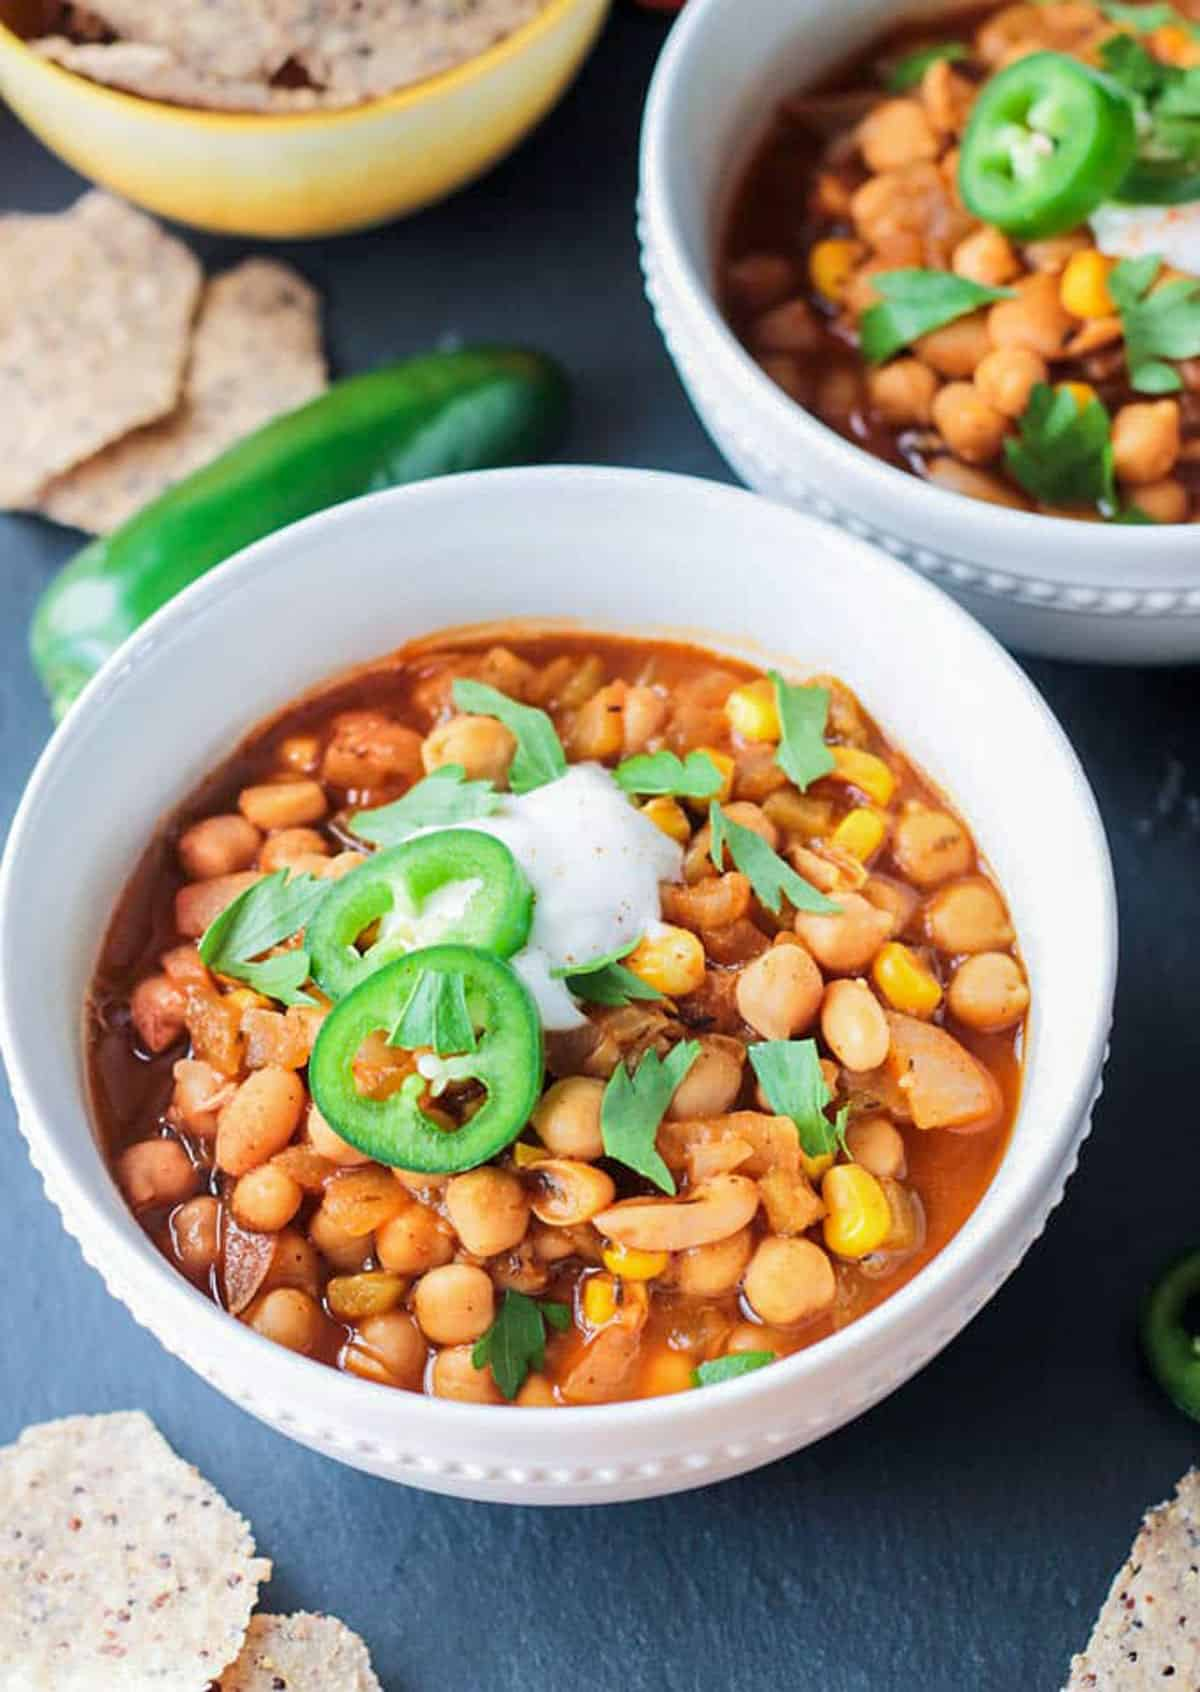 Vegan white chili with chickpeas topped with jalapeño slices.